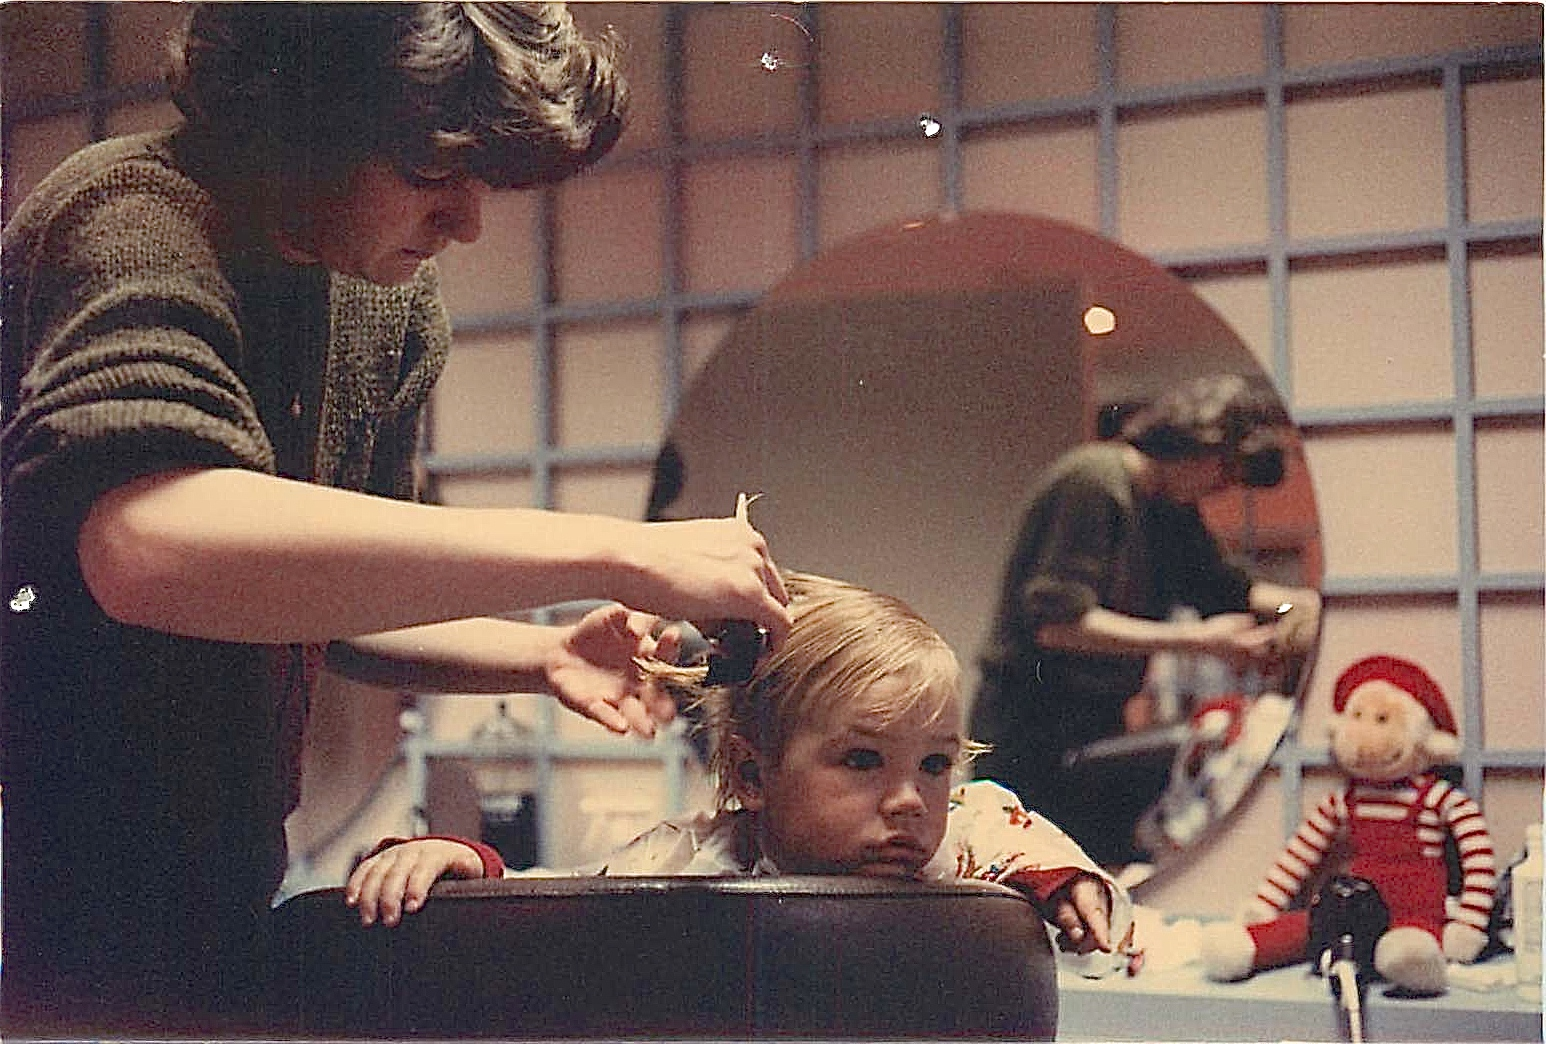 Gregory Wagner, 1984, first hair cut!